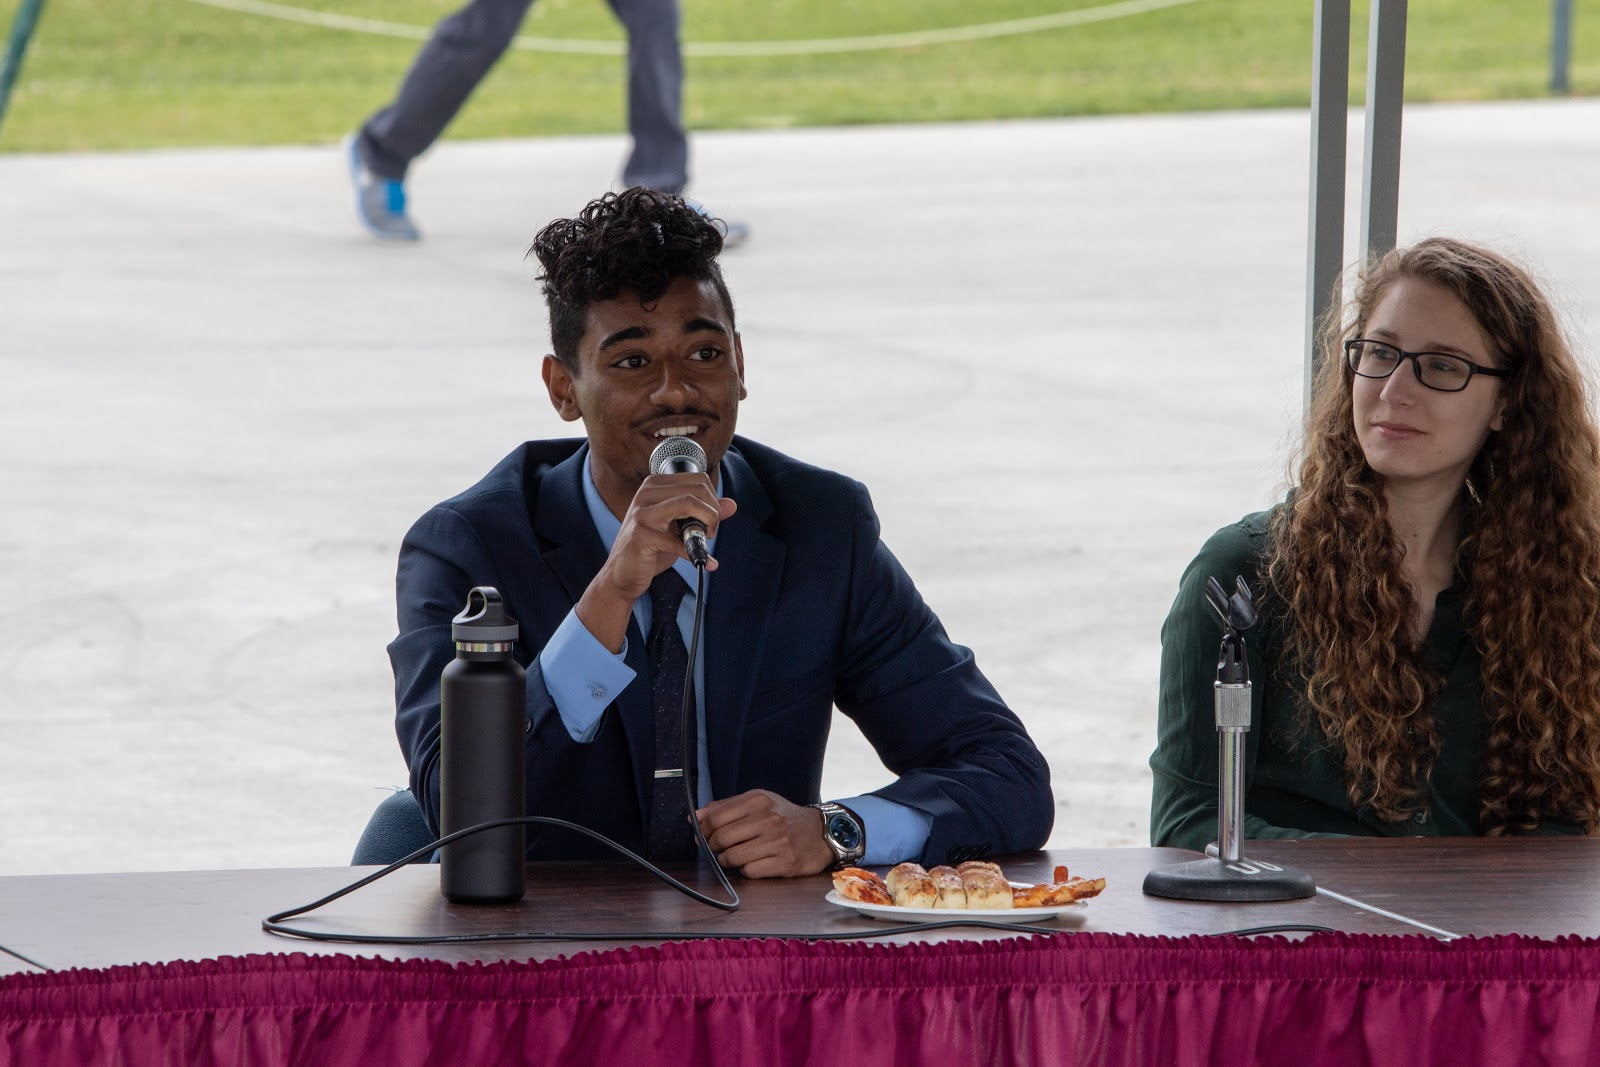 ASI President, Jenny Greenberg, and ASI Vive President at last year's Pizza With the Candidates speaking into two microphones